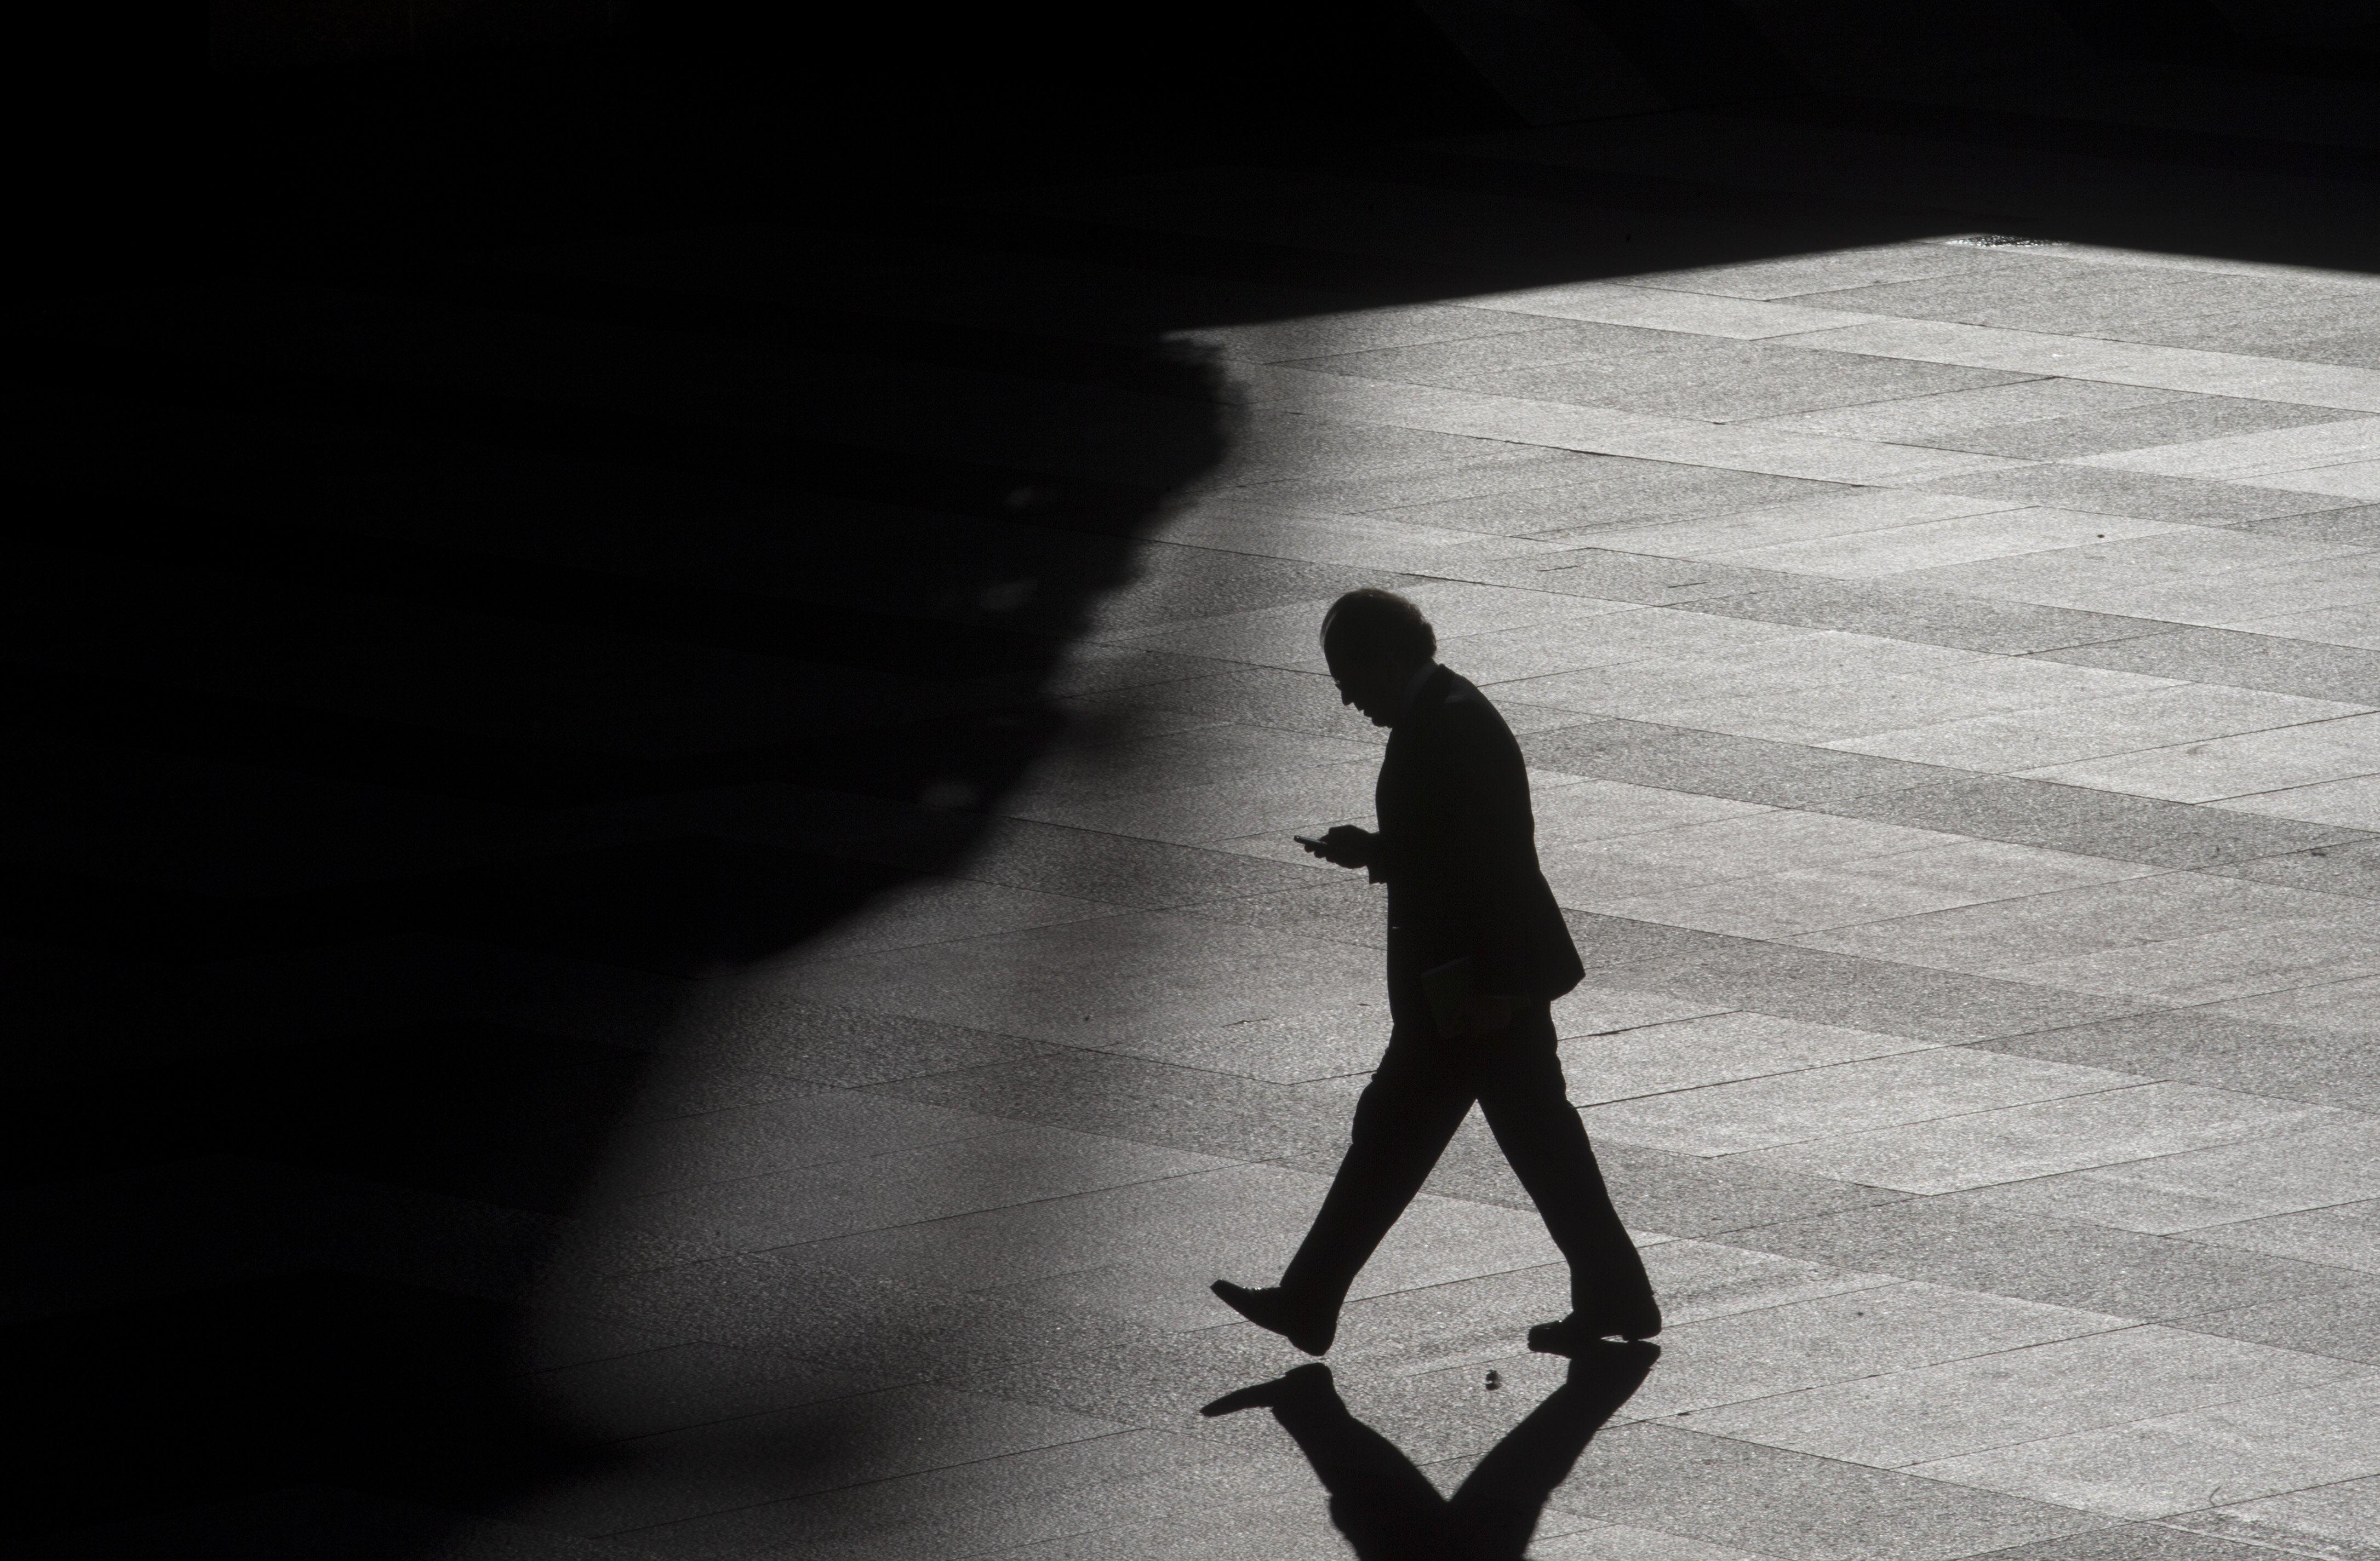 Image: A man looks as his cell phone as he walks into the shadows.